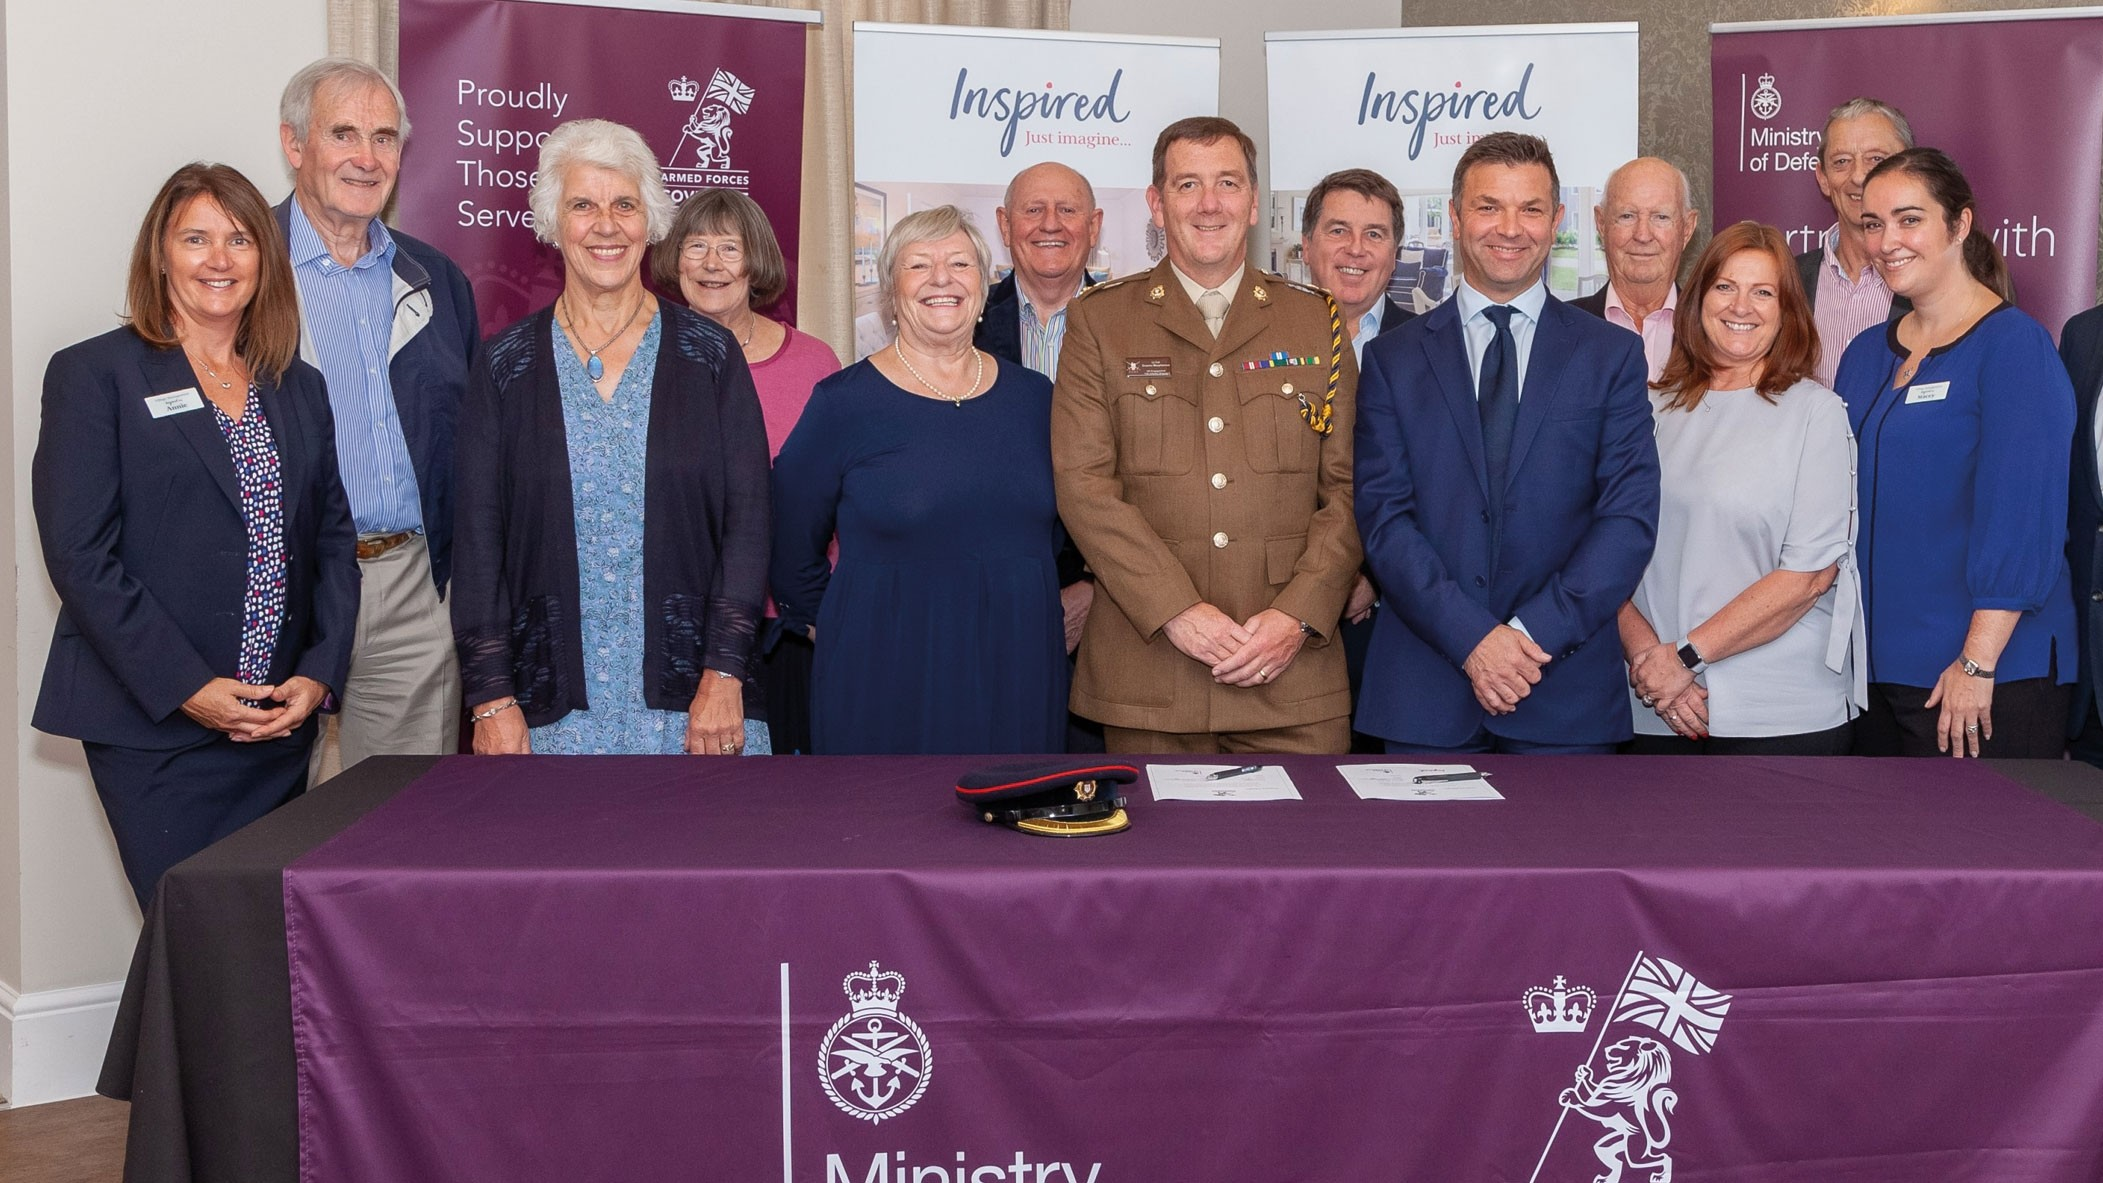 IVG pledges support to former and serving members of the Armed Forces and their families